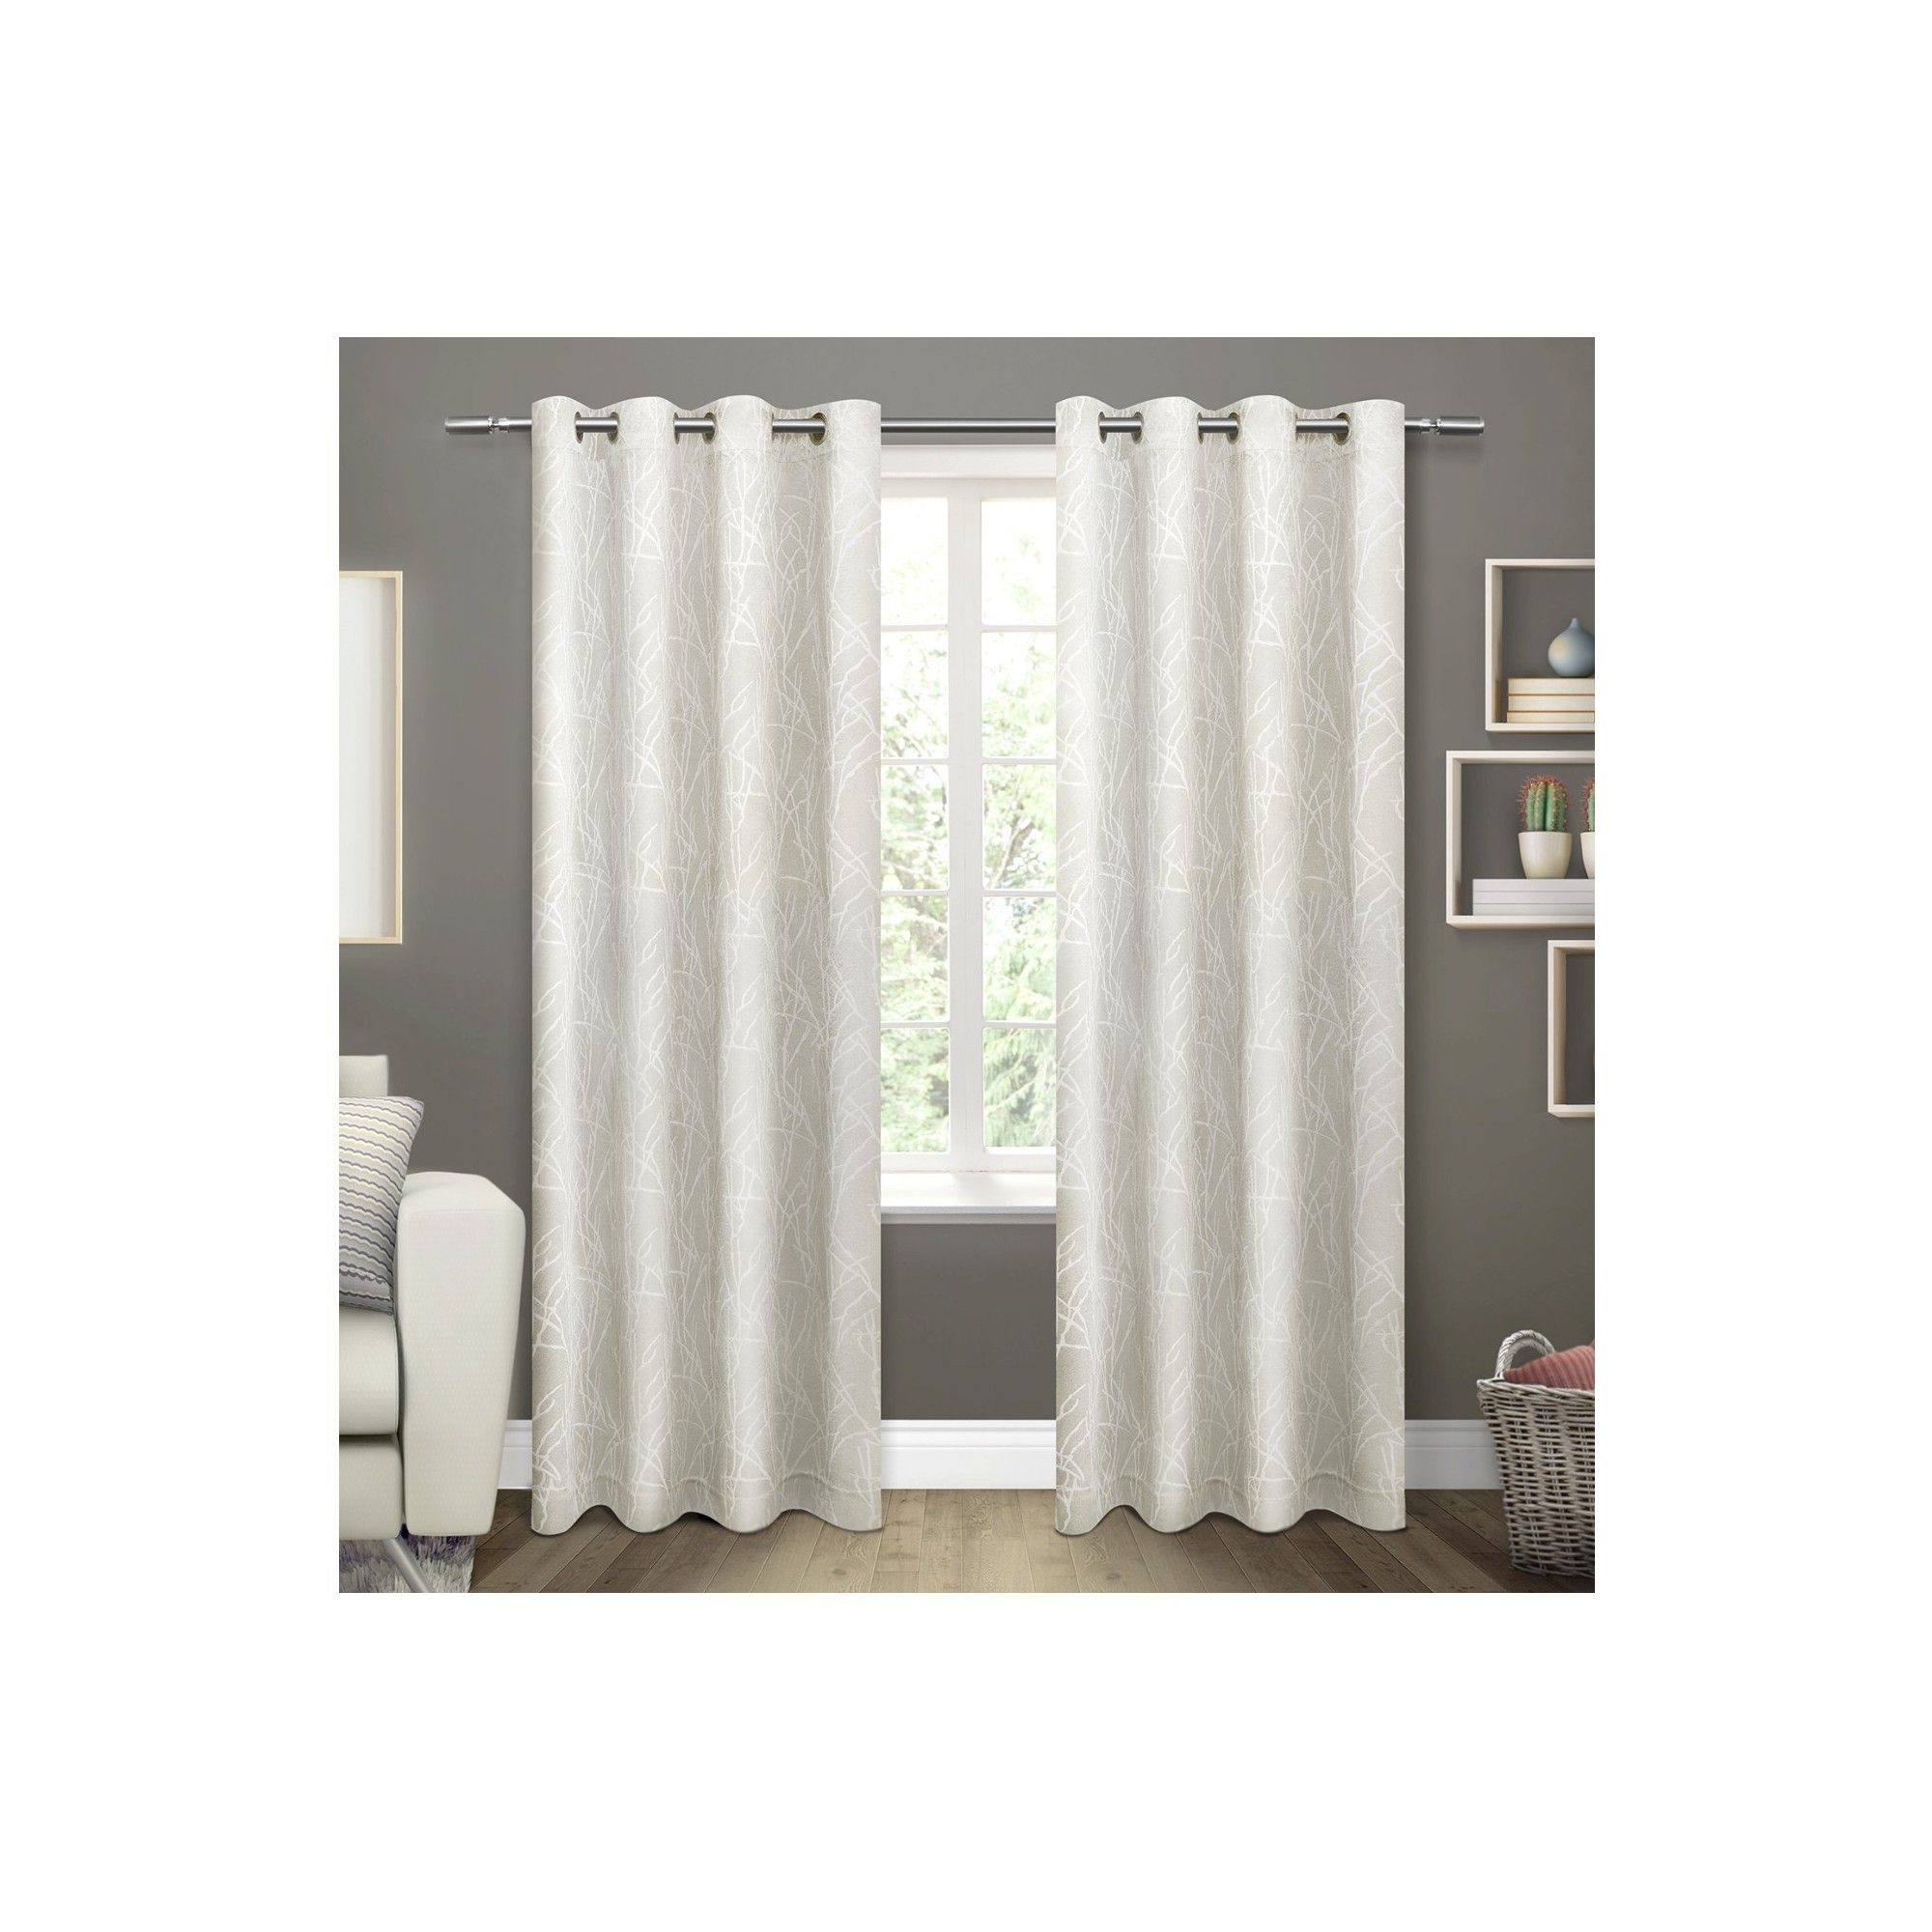 Favorite Twig Insulated Blackout Curtain Panel Pairs With Grommet Top Intended For Twig Insulated Woven Blackout Grommet Top Window Curtain (View 7 of 20)